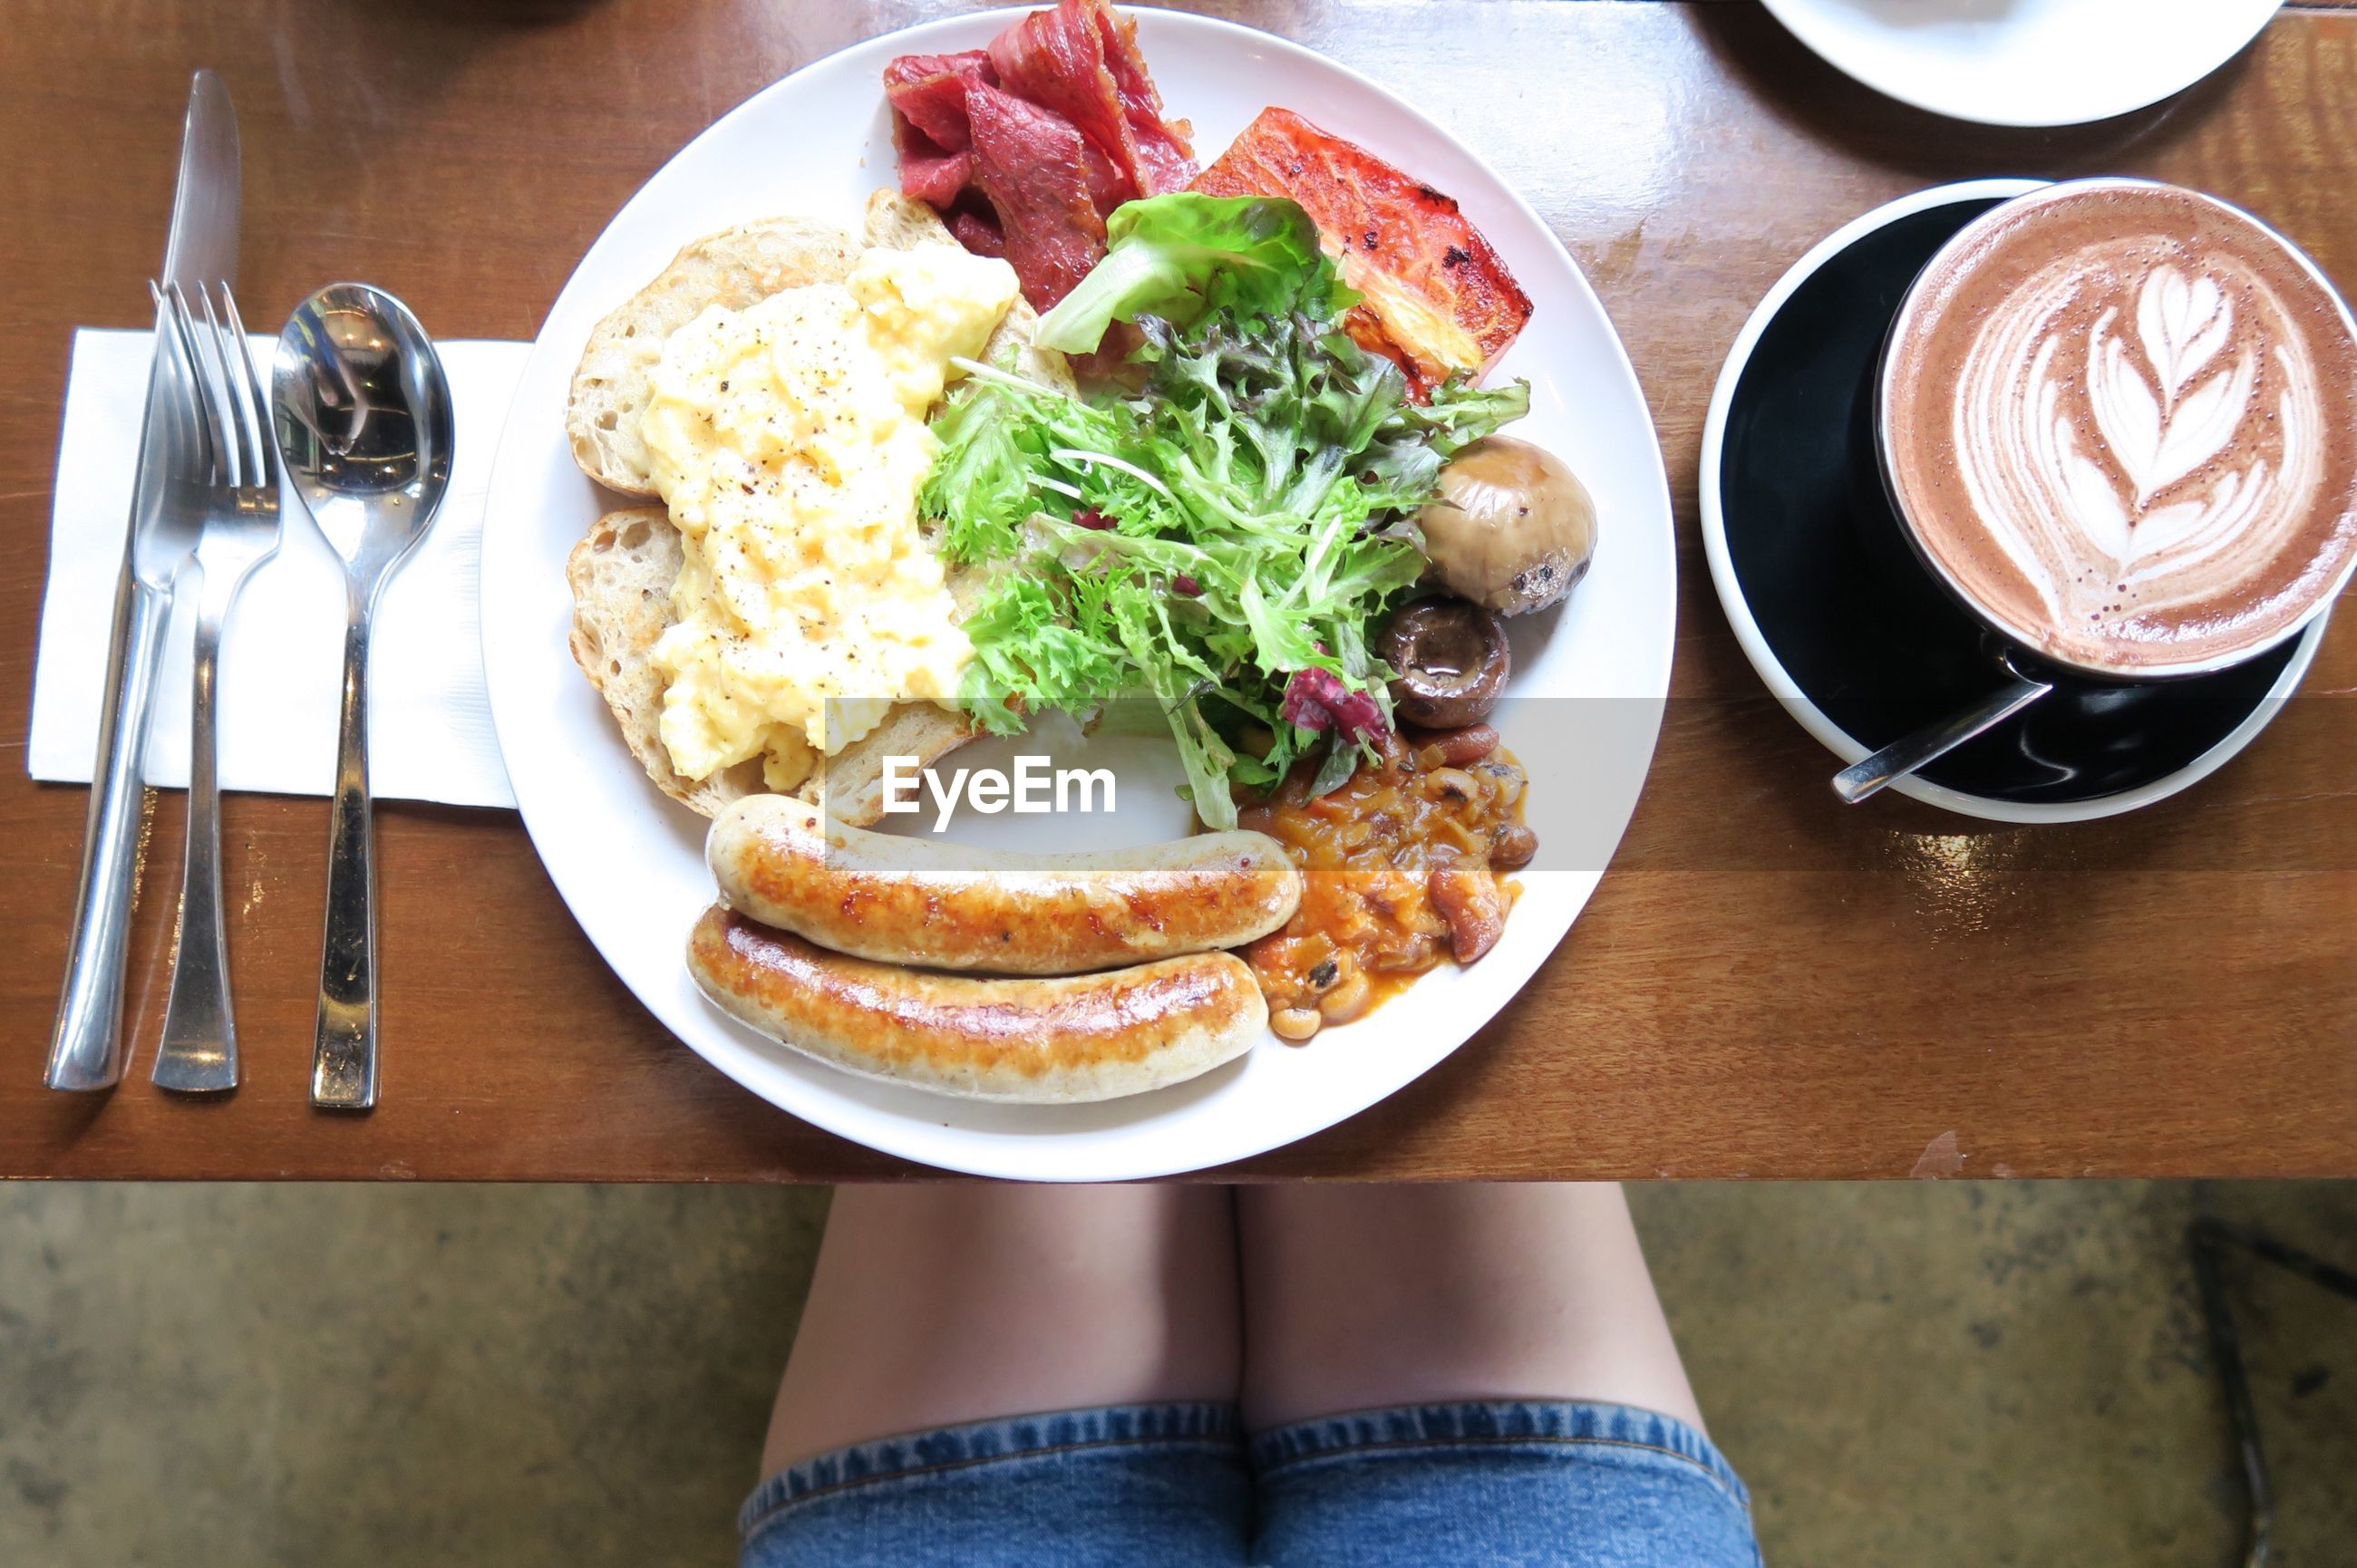 Low section of person with breakfast on table